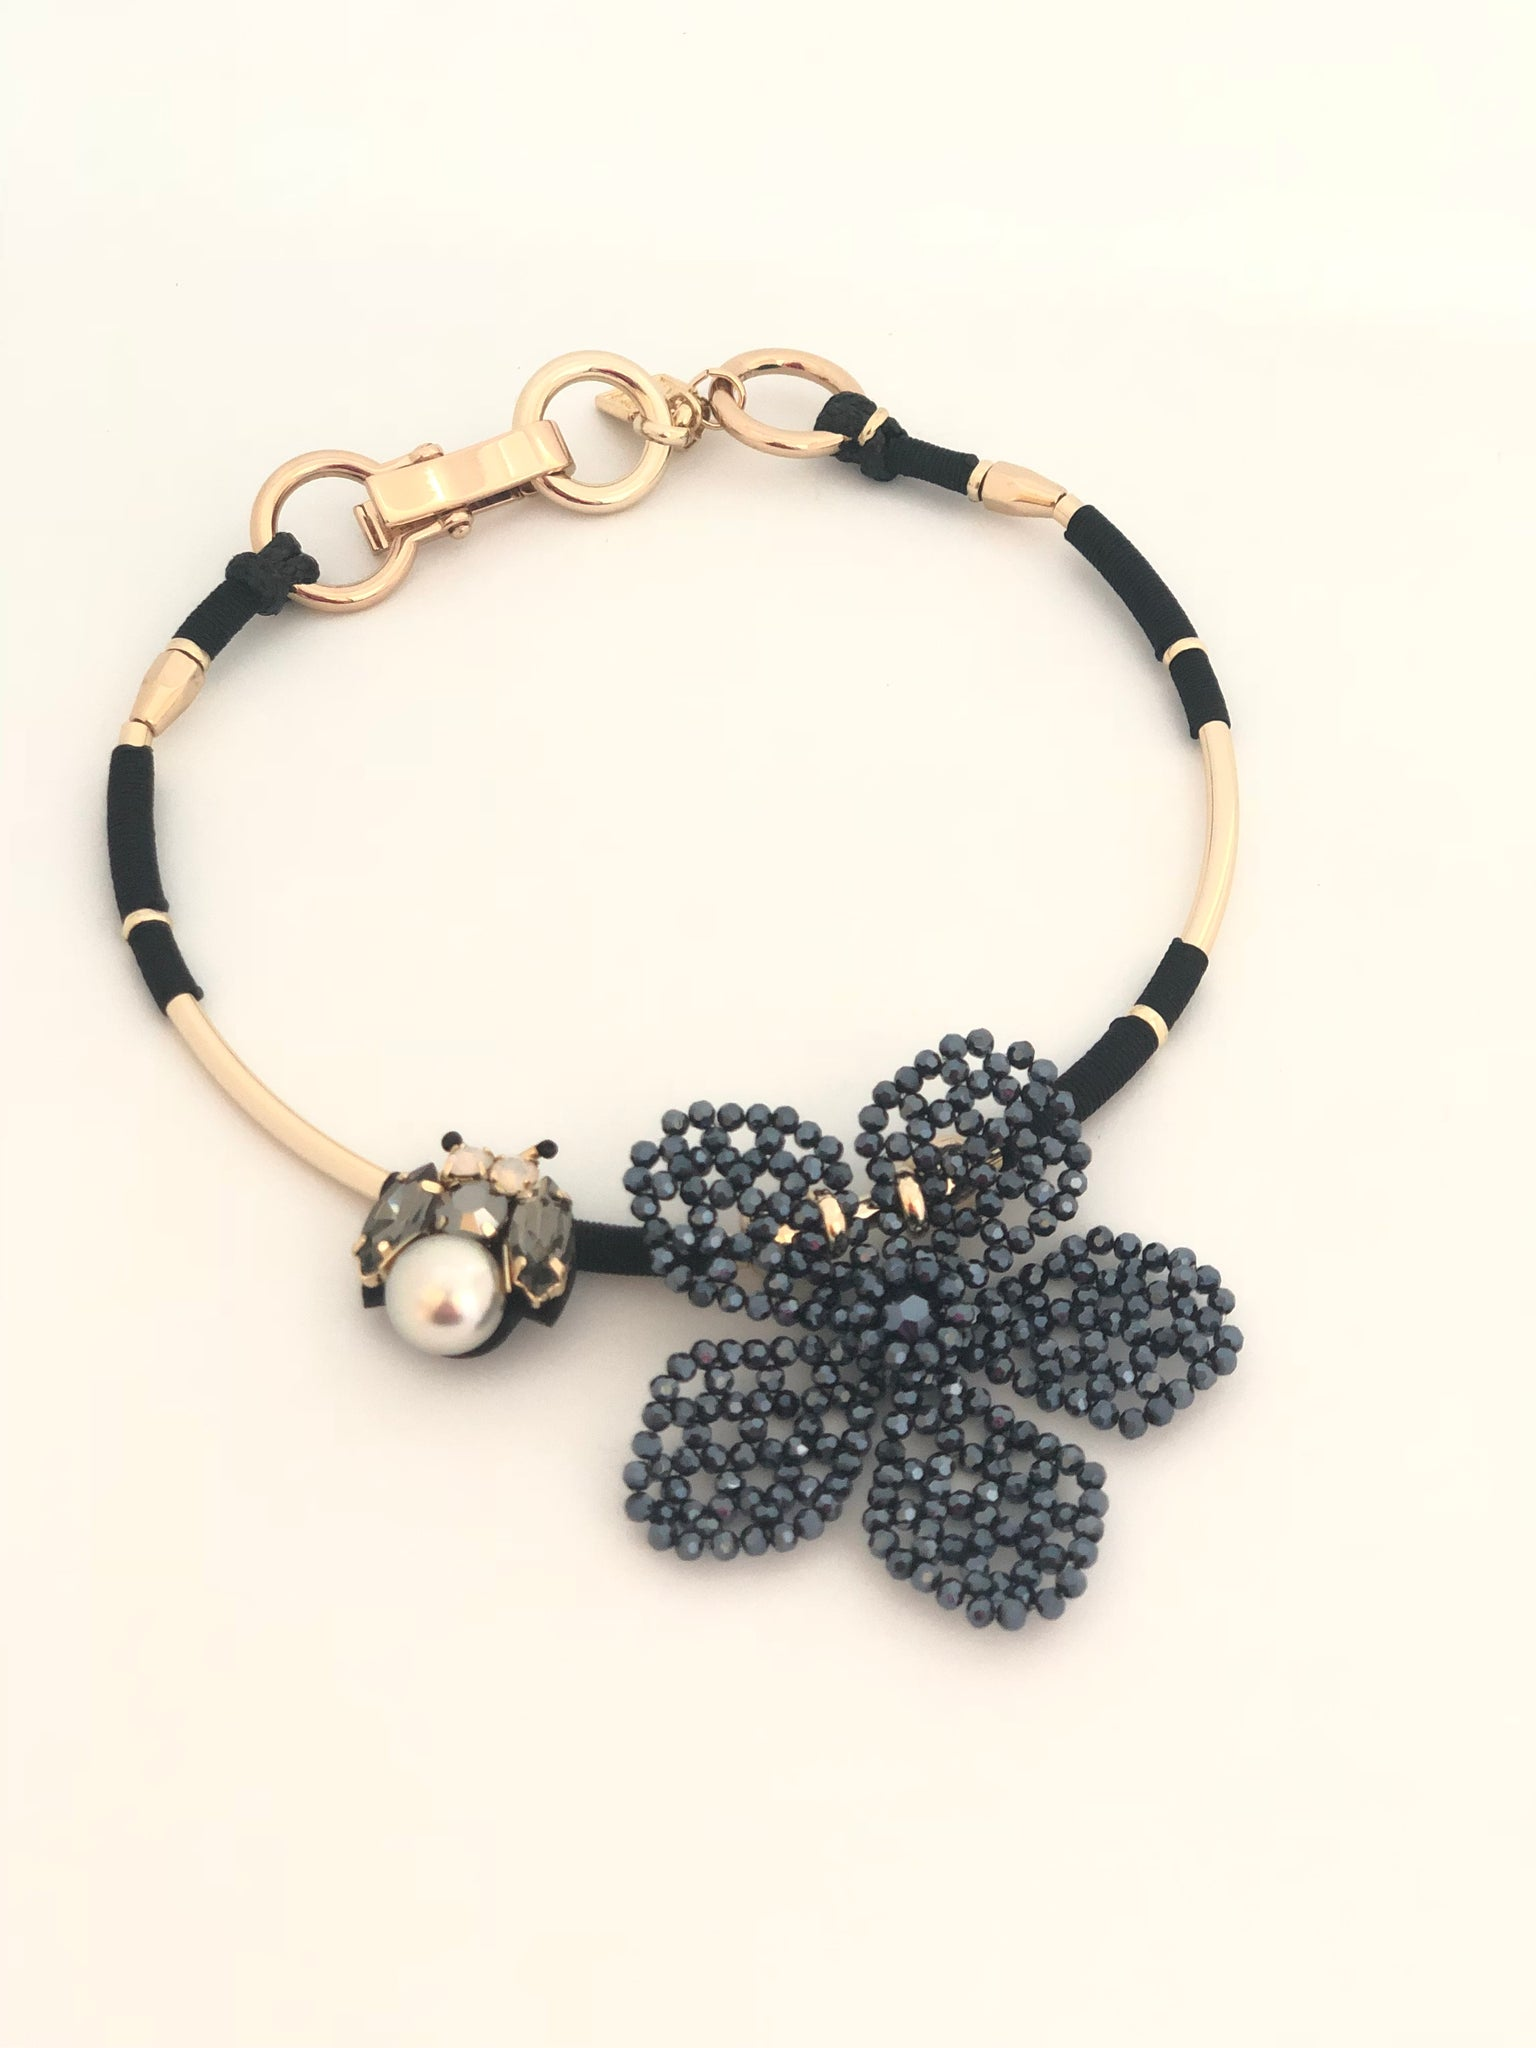 ZZ-N2235 Choker necklace with bumble bee and flower